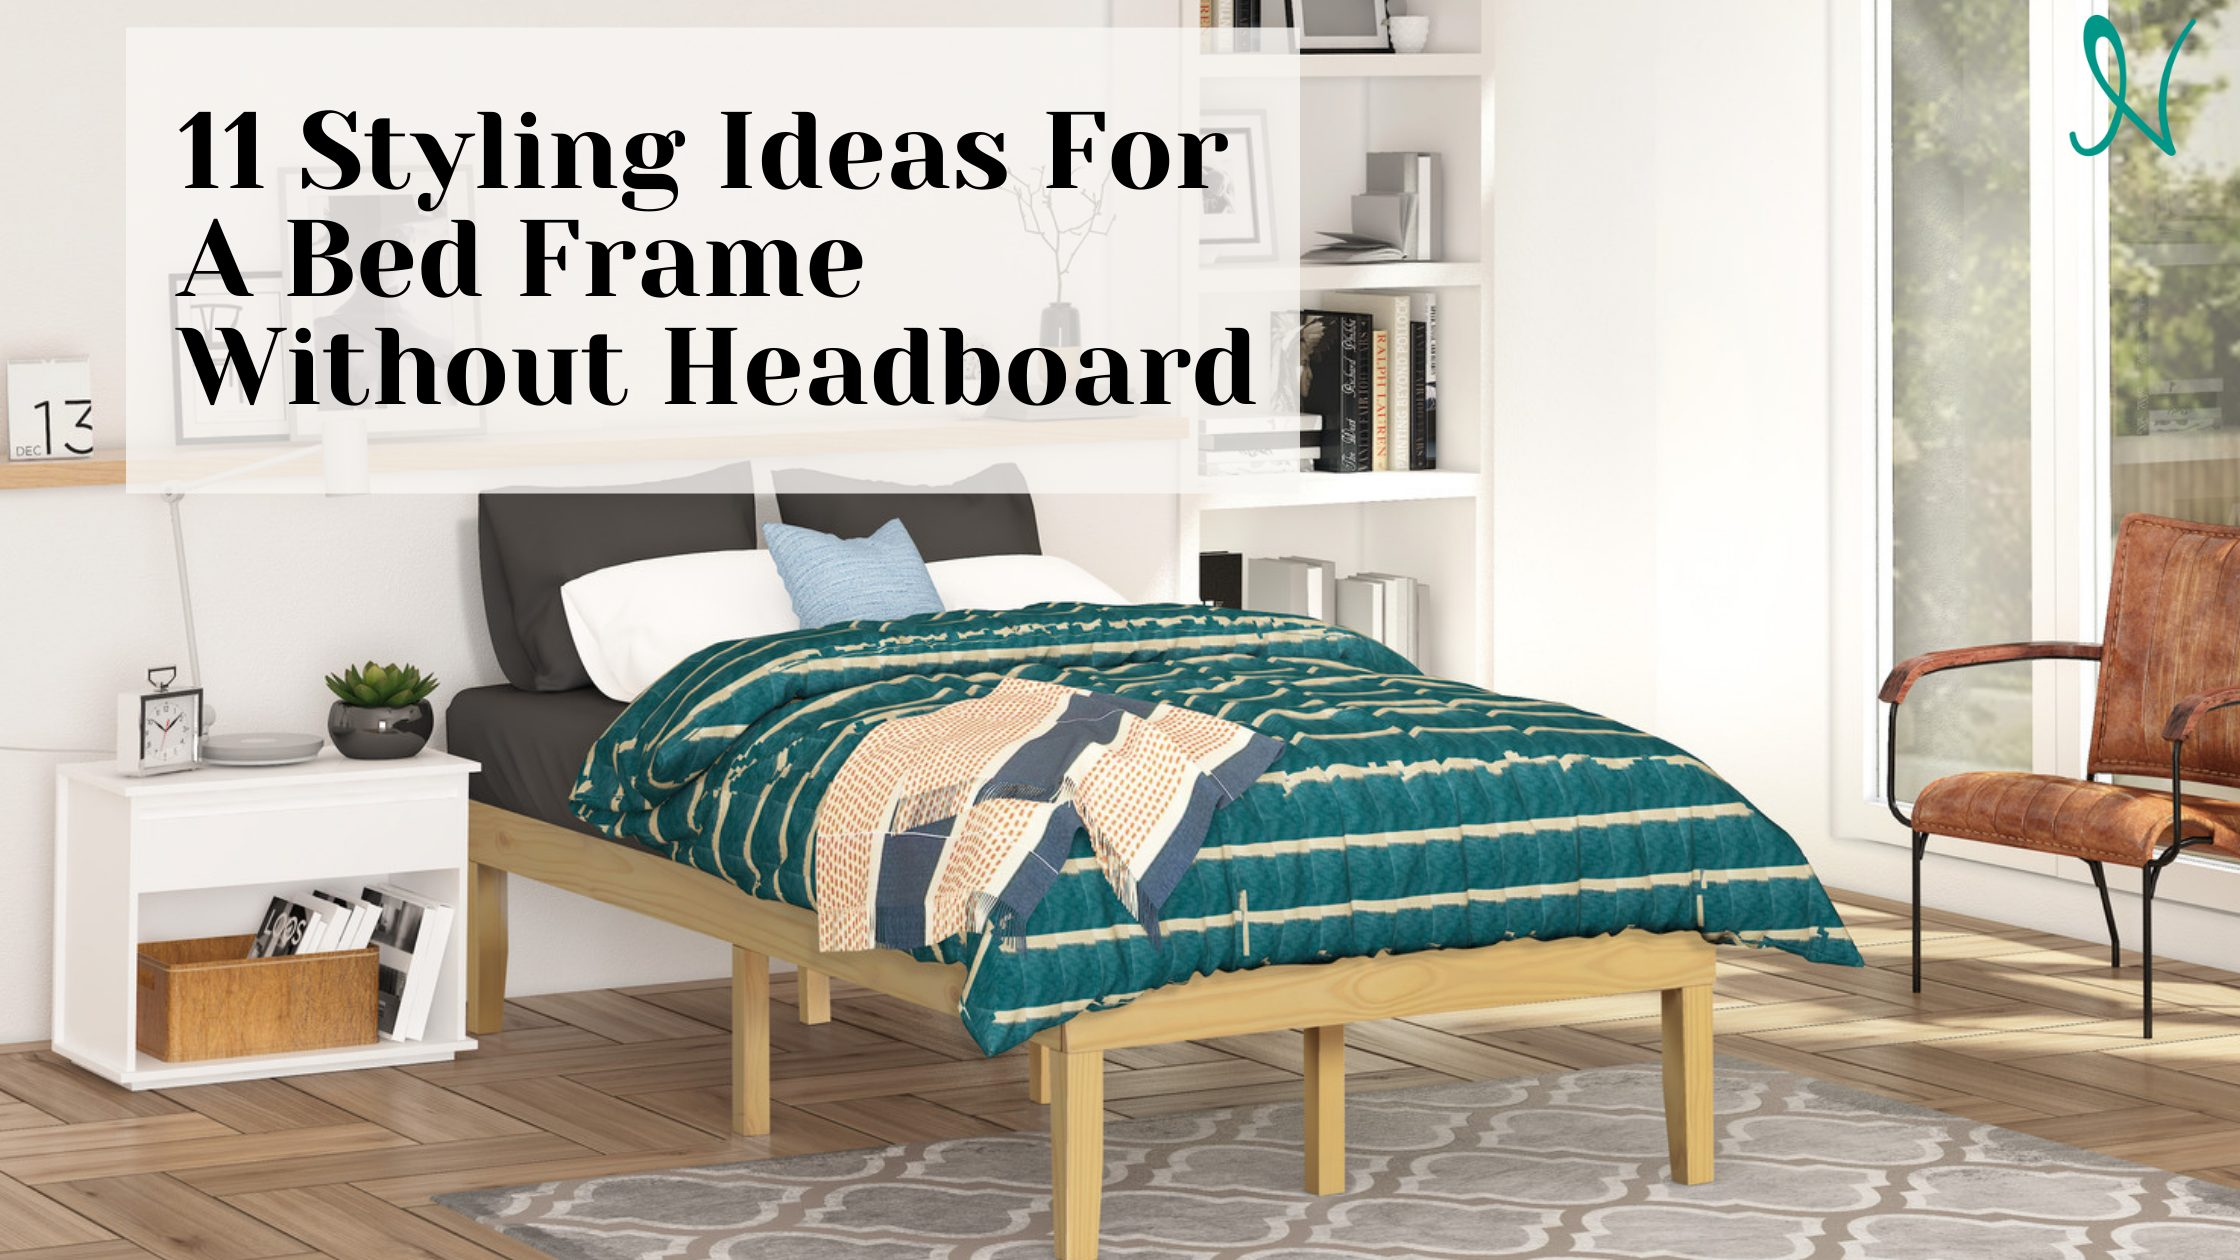 11 Styling Ideas For A Bed Frame Without Headboard